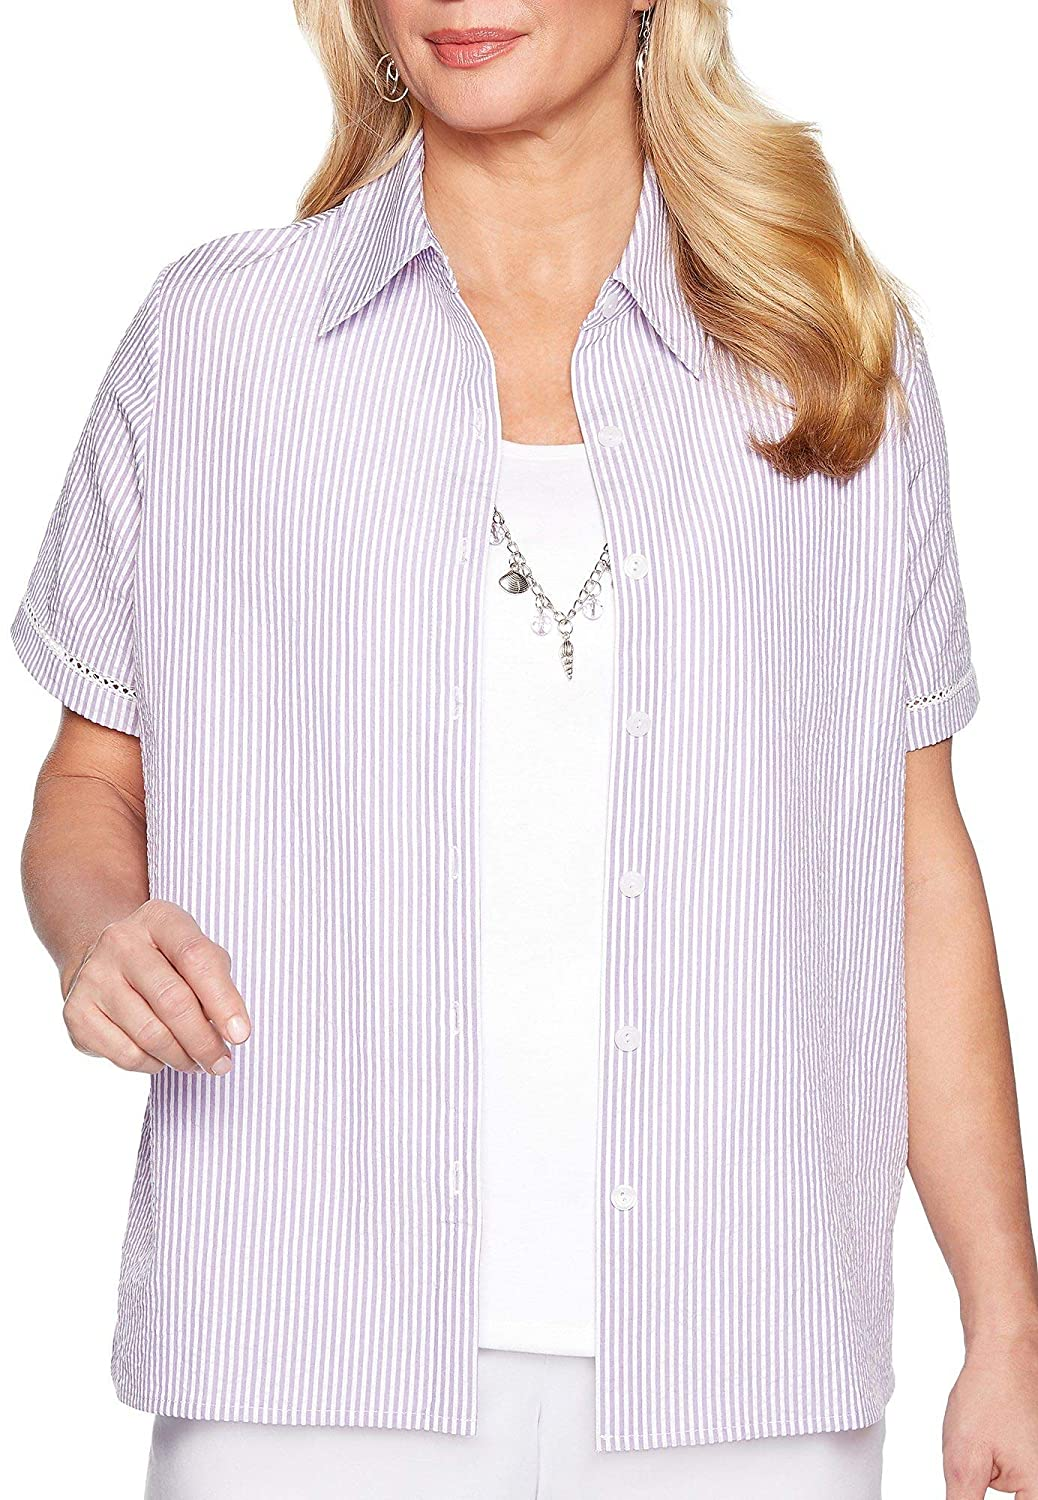 Alfred Dunner Womens Catalina Island Seersucker Two for One Top